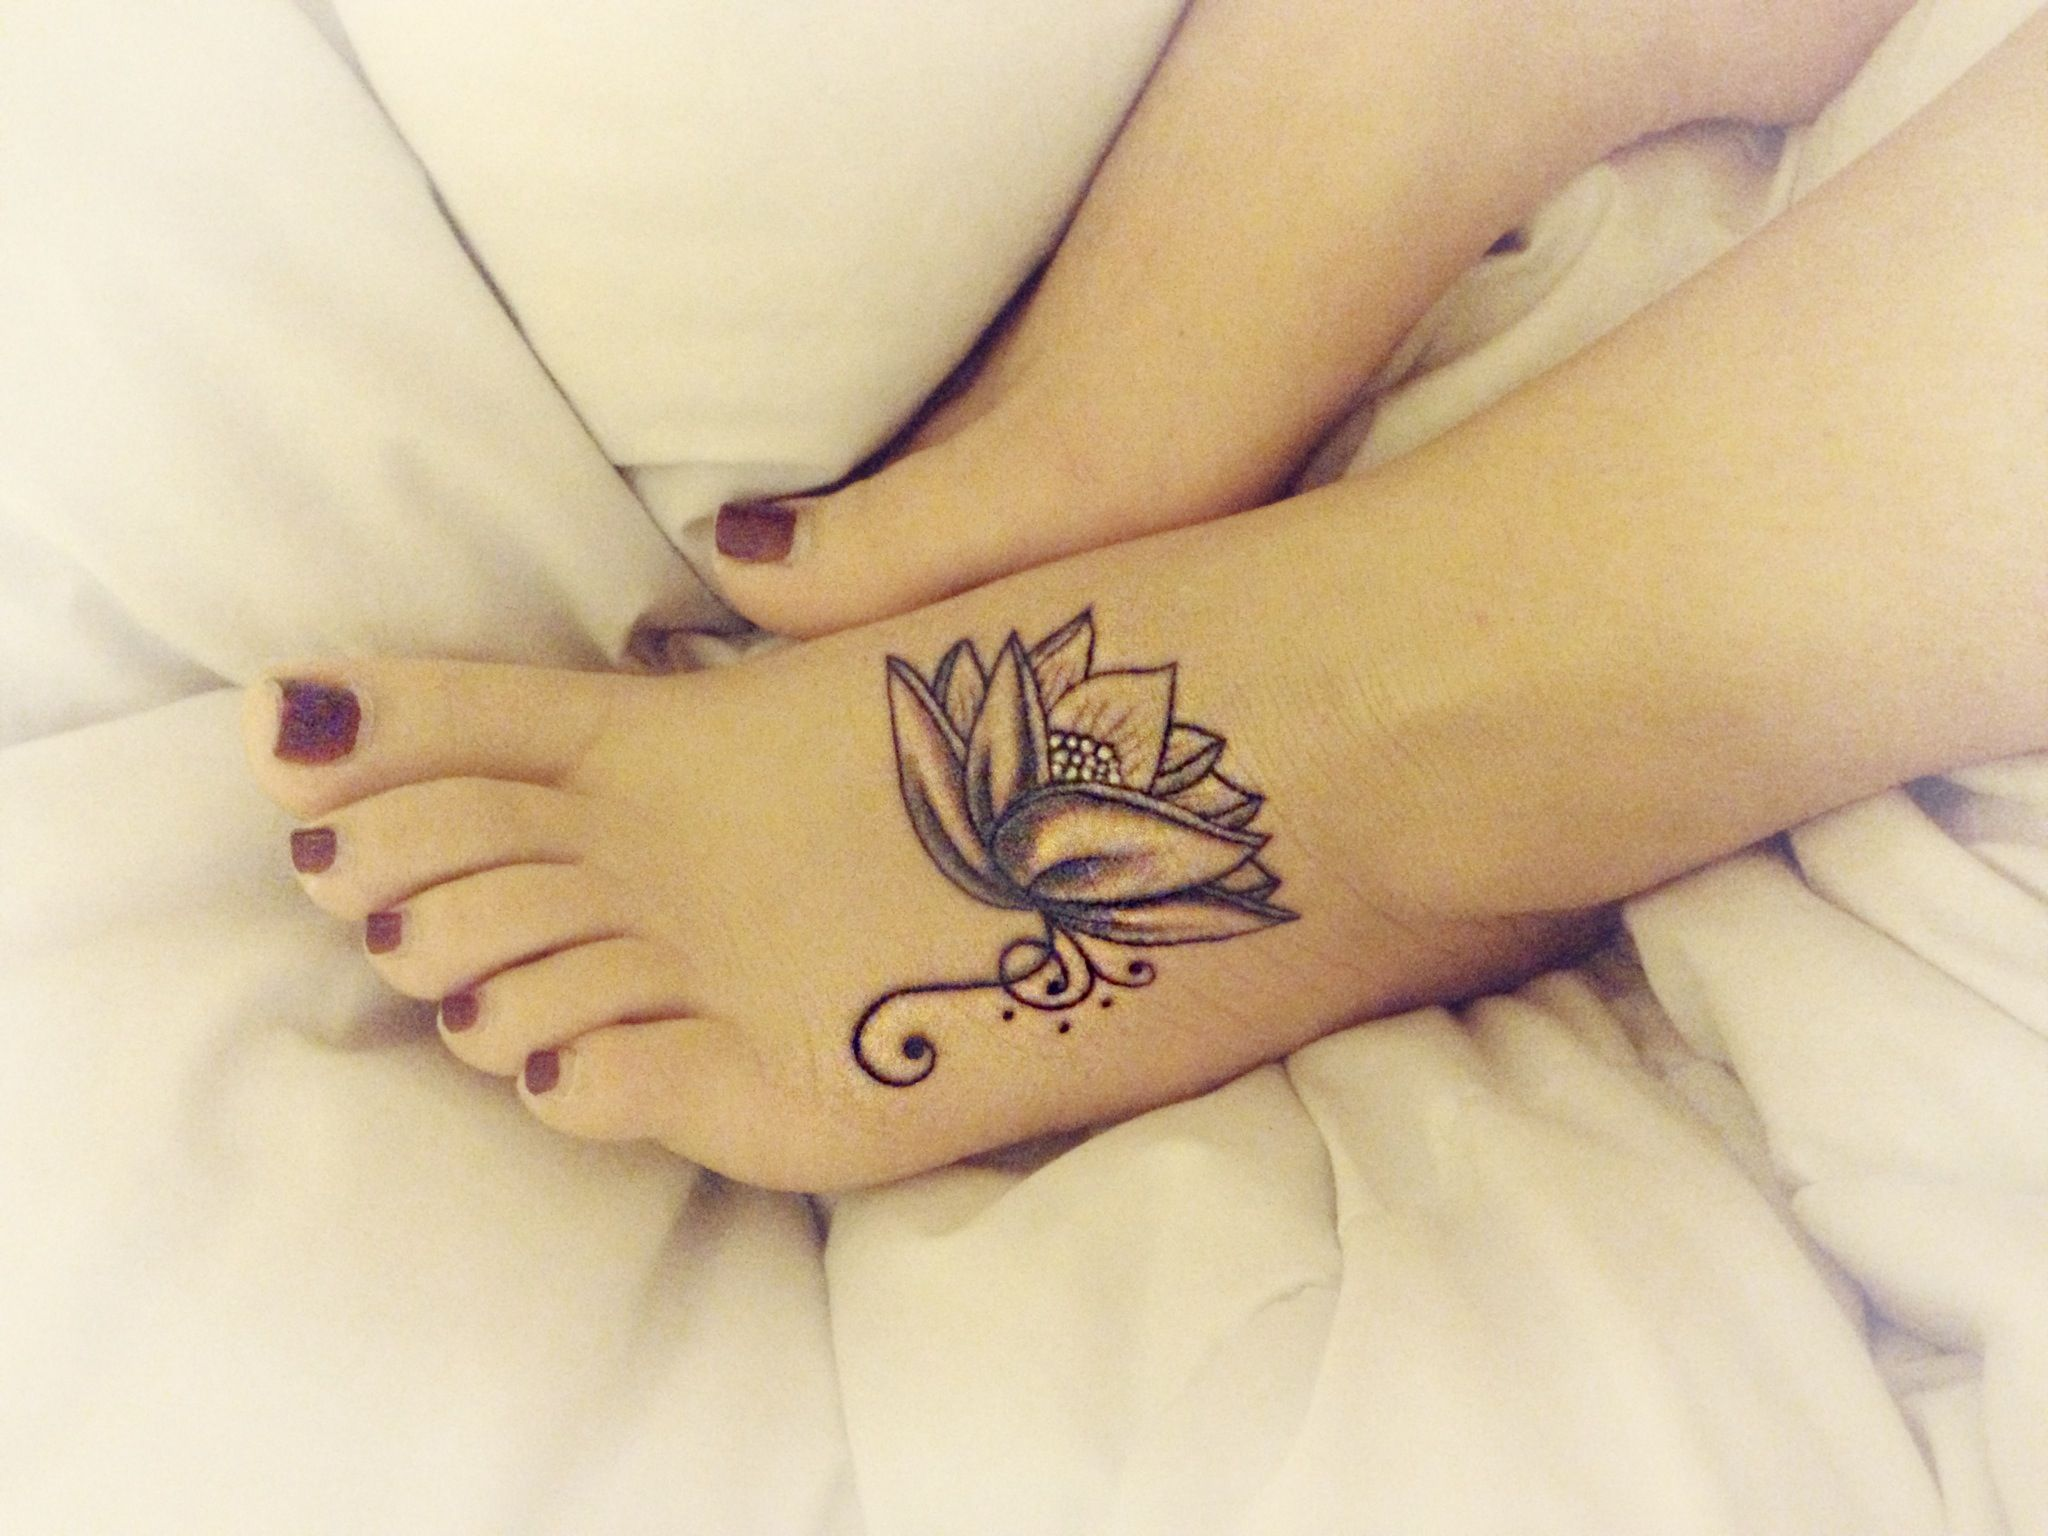 Lotus Flower Tattoo On Foot With Swirls Black Grey And White My